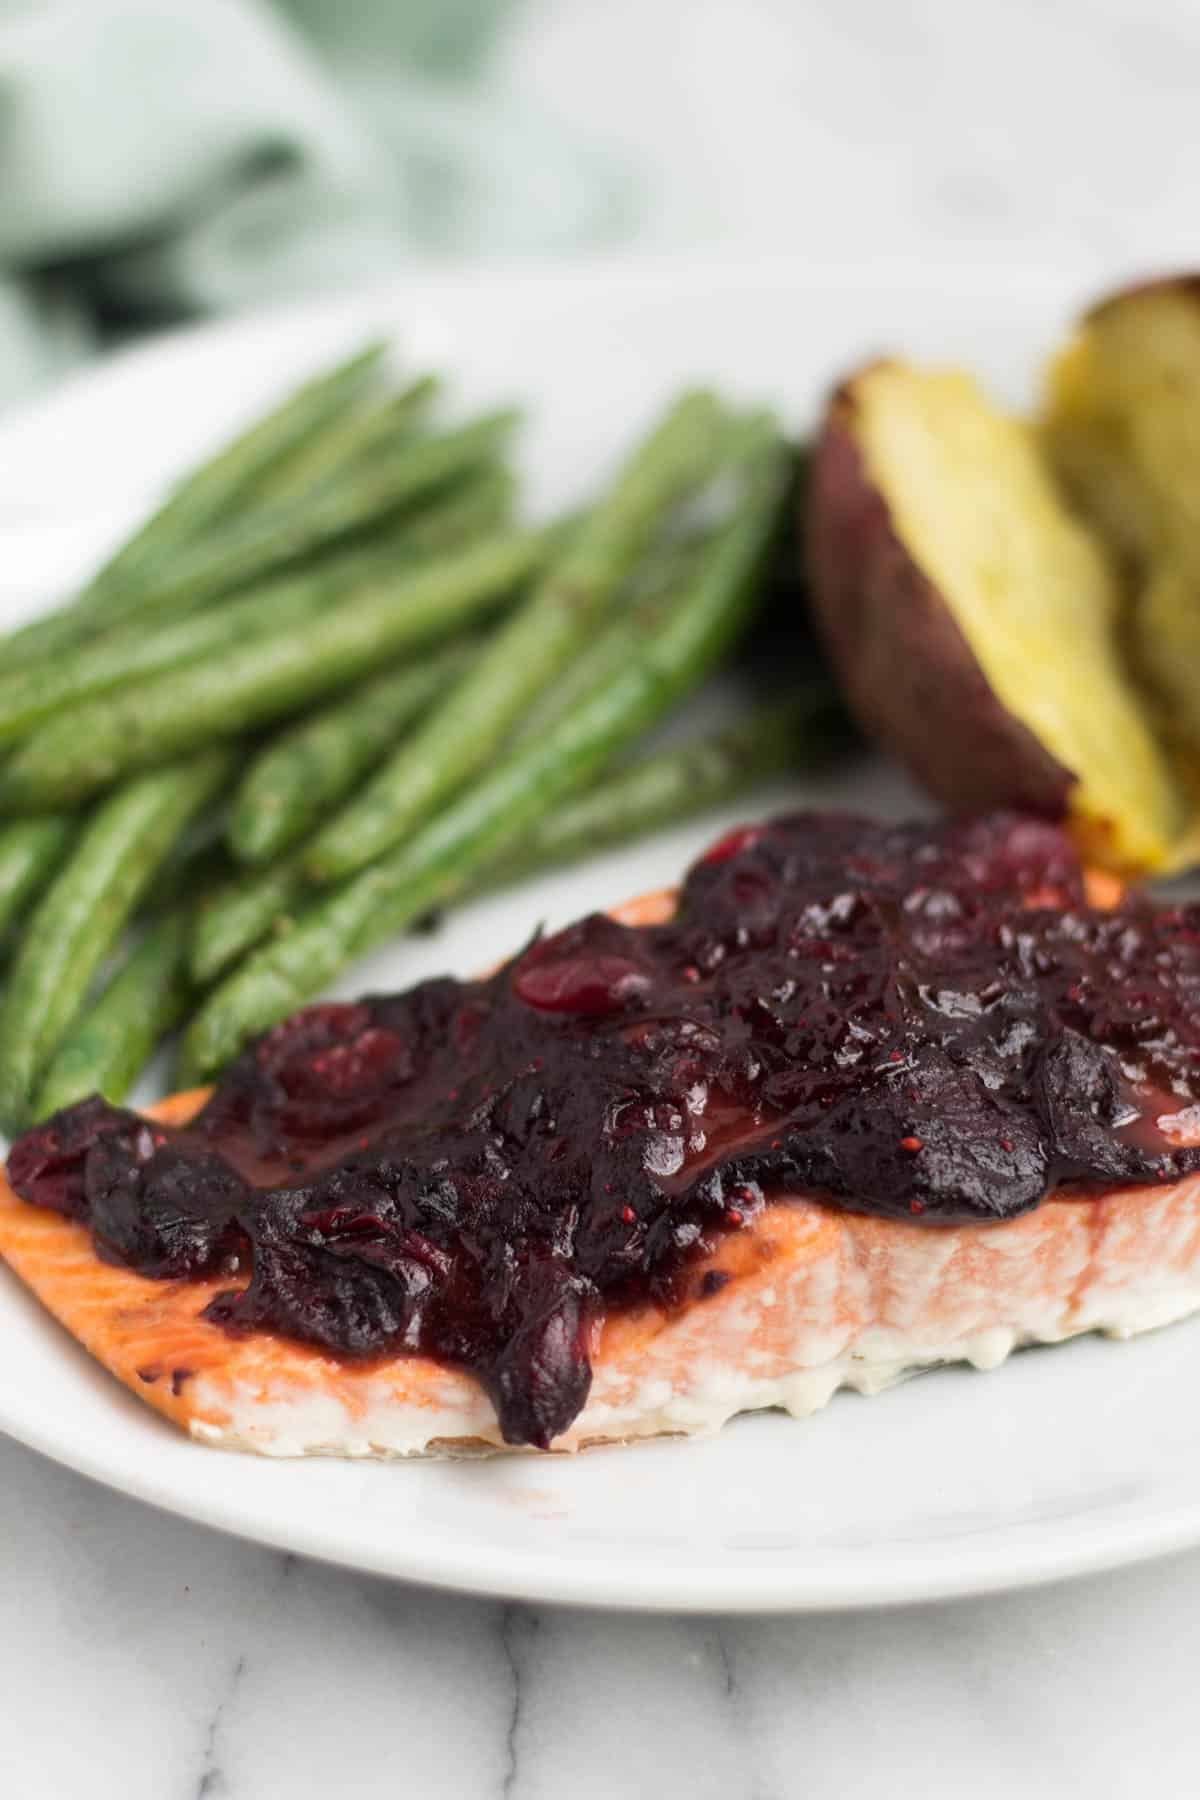 An easy and festive seafood dish, thisCranberry Balsamic Roasted Salmon takes 15 minutes and is a crowd pleaser for the holidays - paleo, gluten free, and Whole30 approved! - Eat the Gain